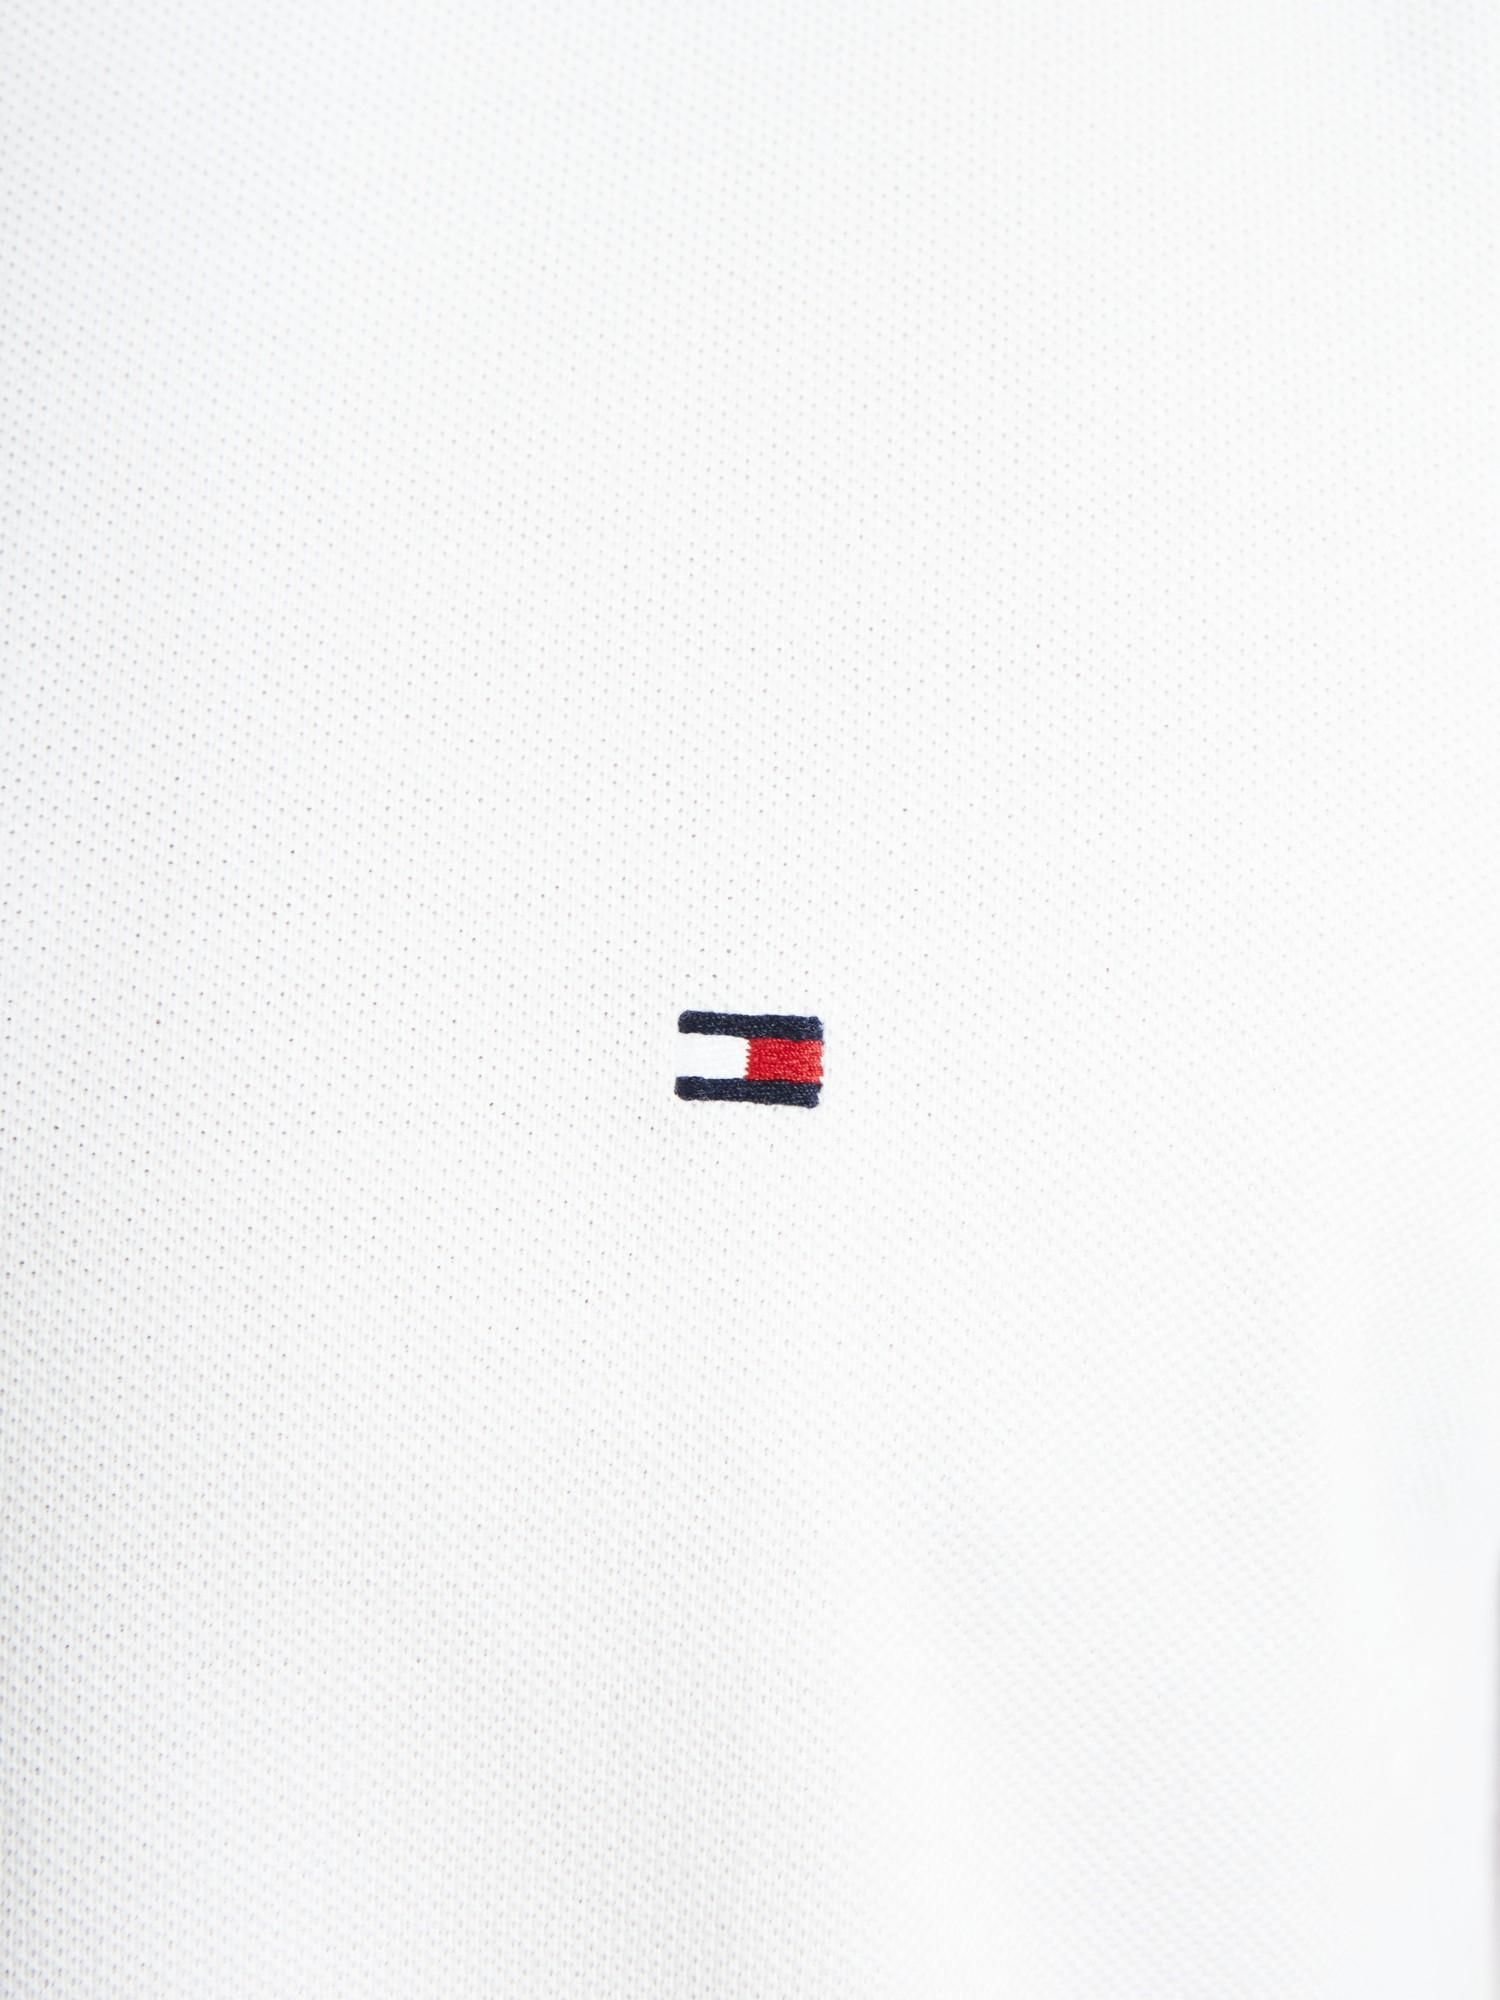 1500x2000 Tommy Hilfiger Wallpaper - (36+) Group Wallpapers